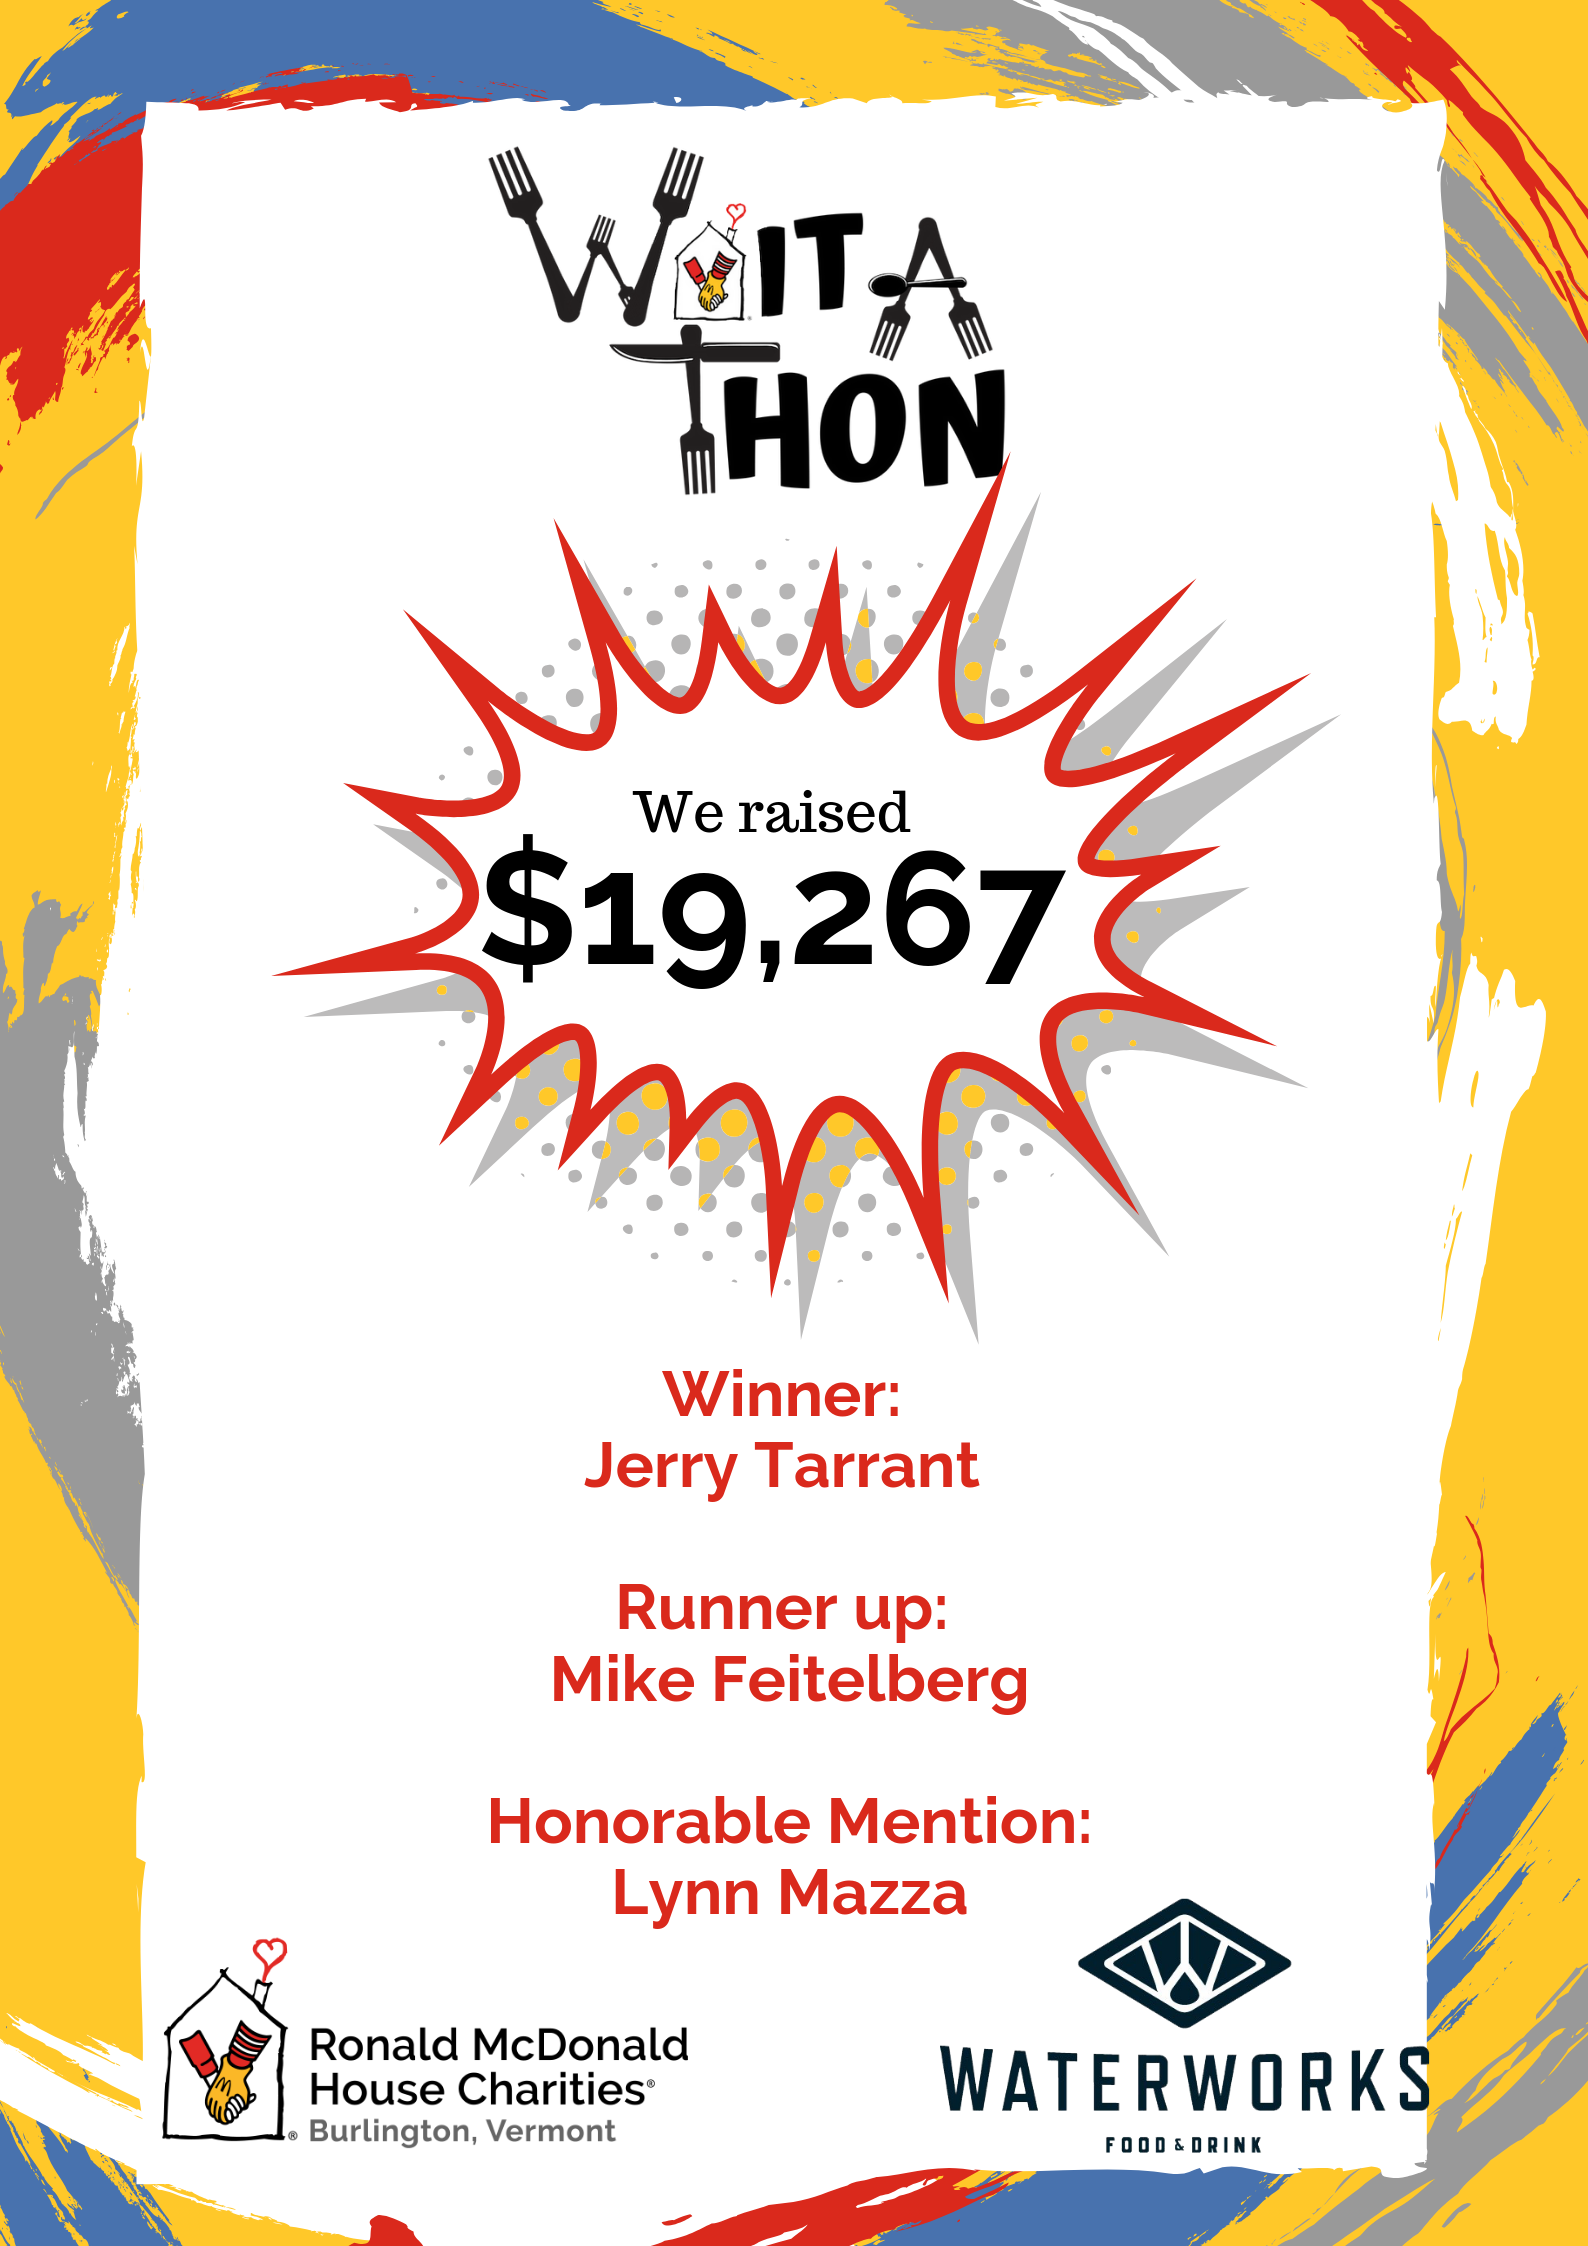 Wait-A-Thon Results…